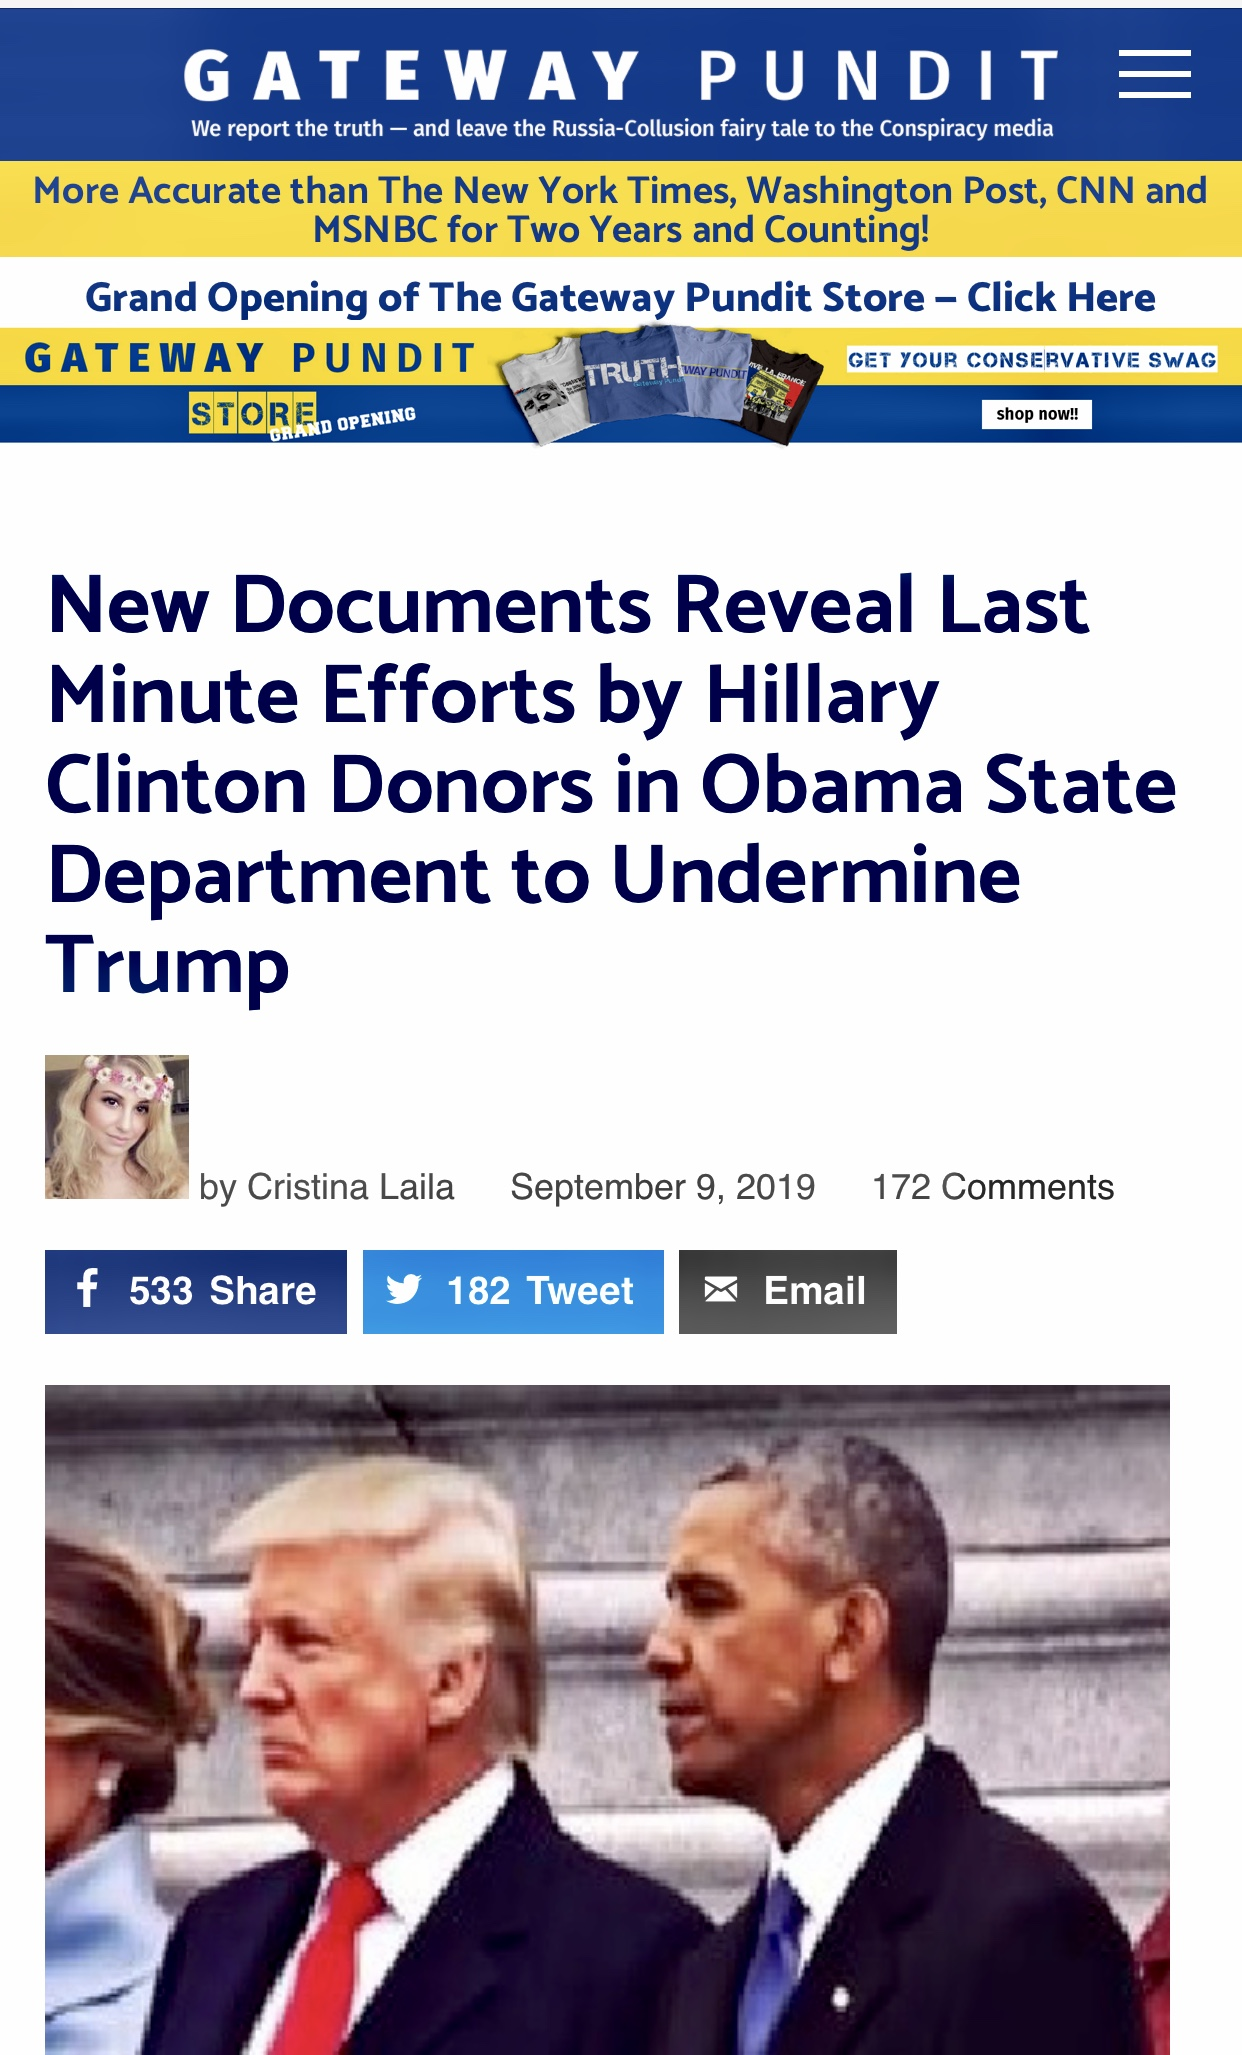 New Documents Reveal Last Minute Efforts by Hillary Clinton Donors in Obama State Department to Undermine Trump